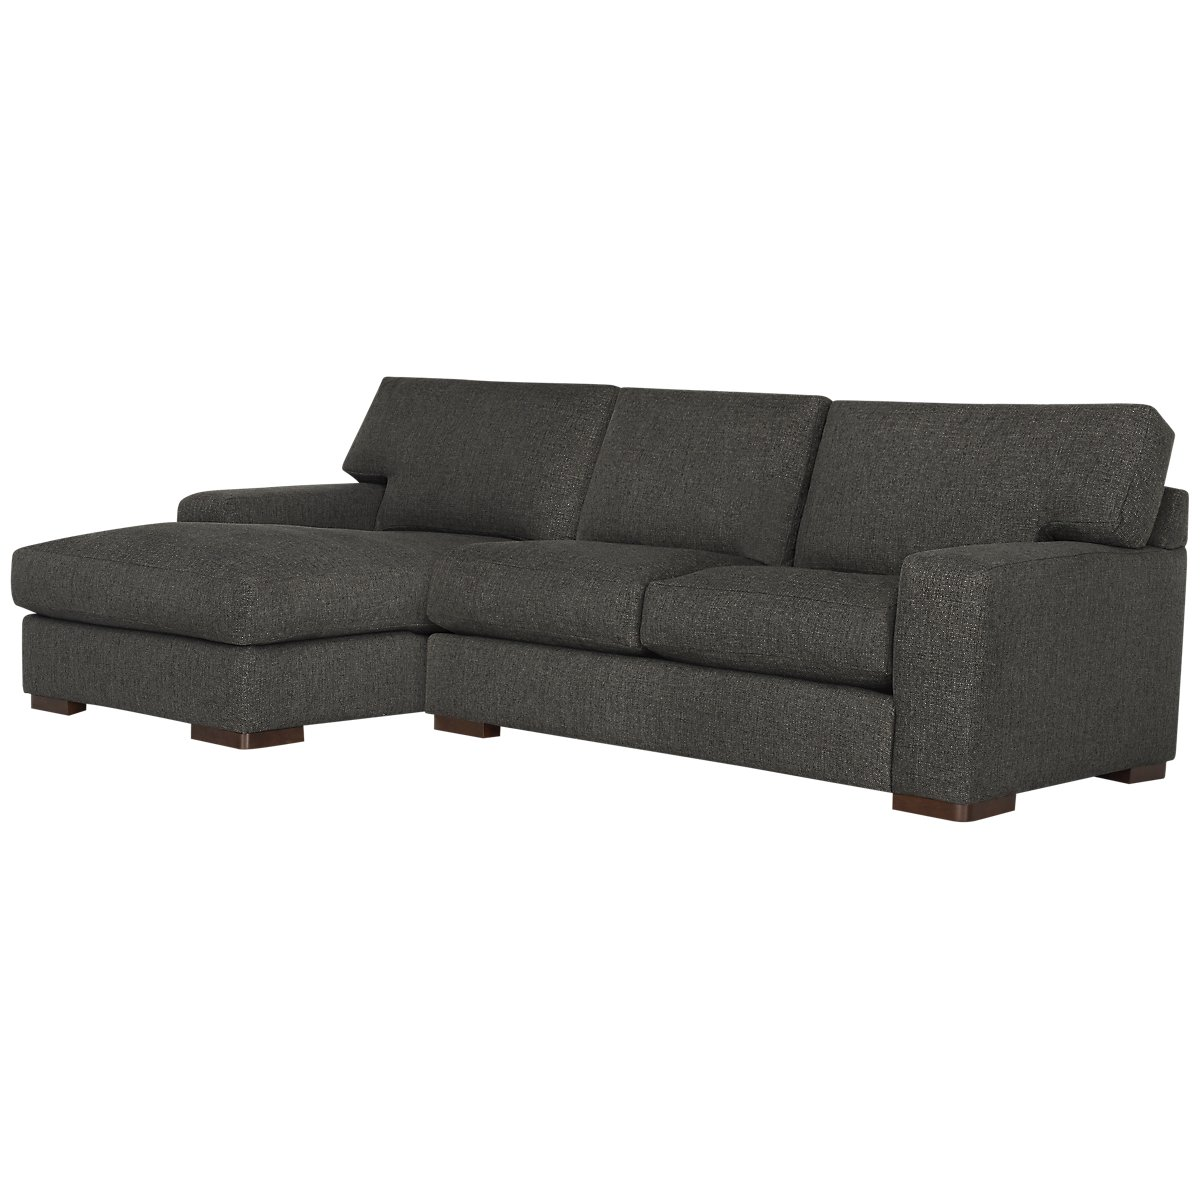 Veronica Dark Brown Fabric Left Chaise Sectional